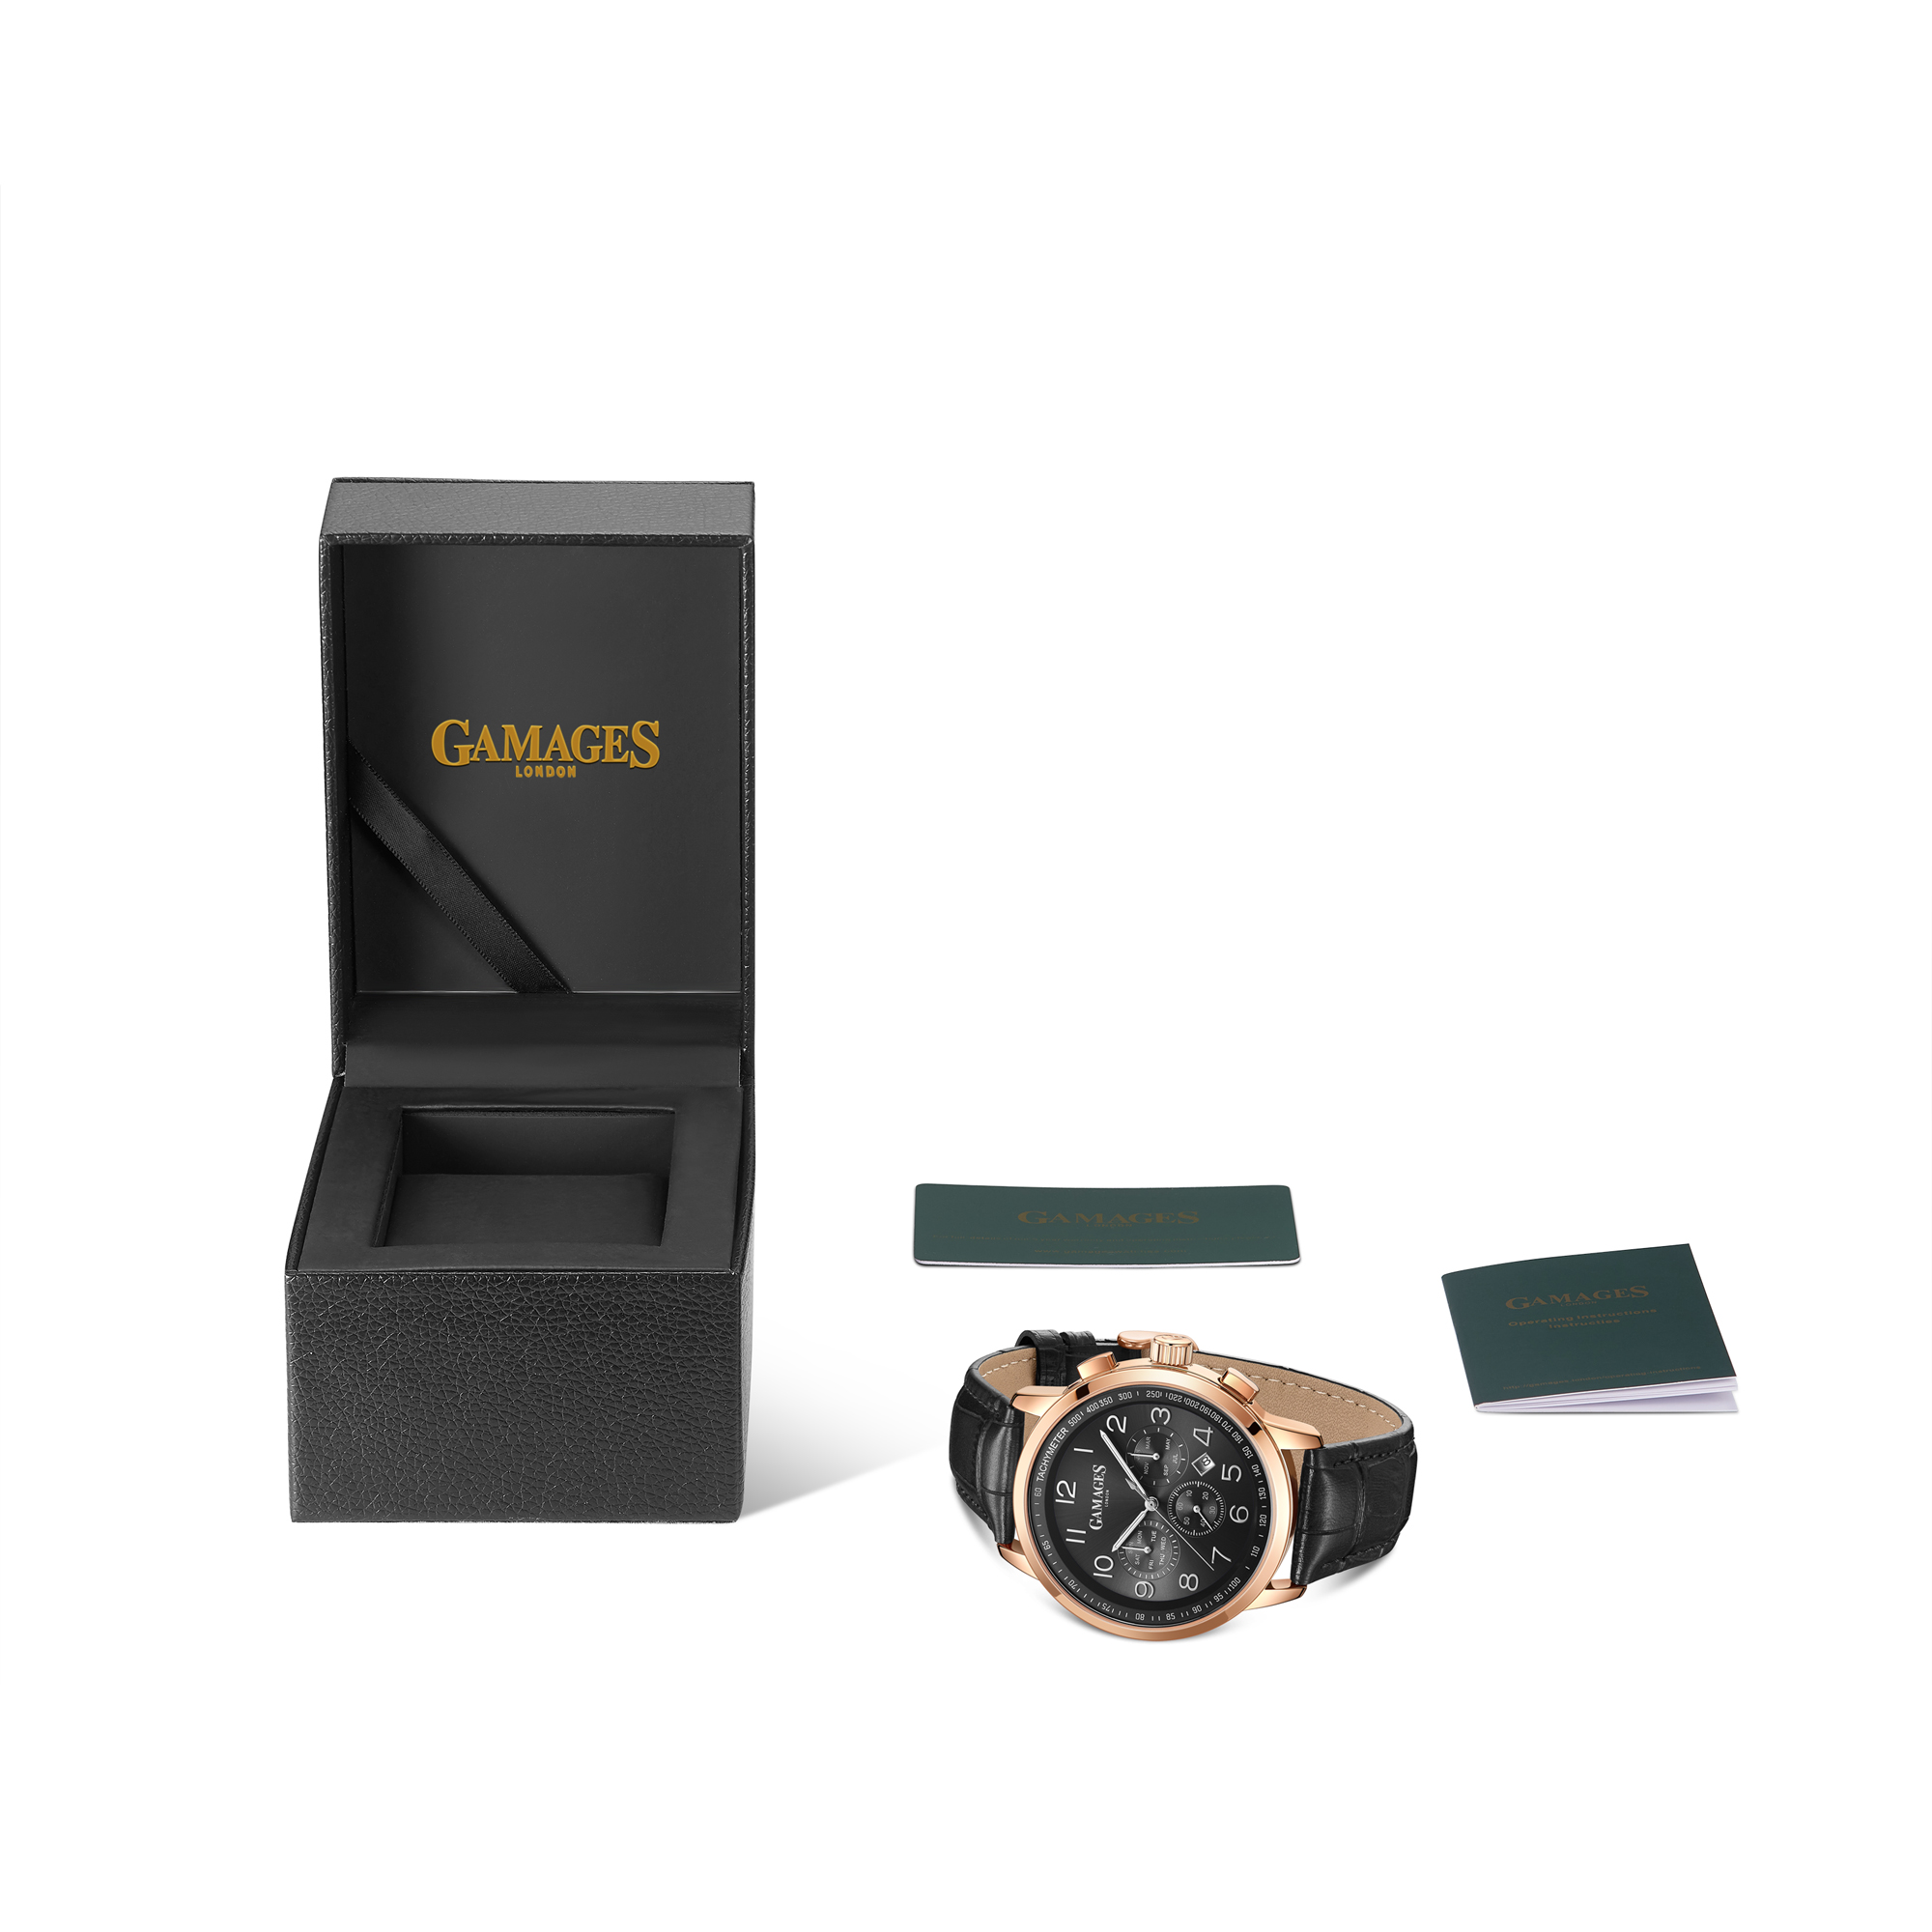 Ltd Edition Hand Assembled Gamages Classique Automatic Black – 5 Year Warranty & Free Delivery - Image 2 of 4